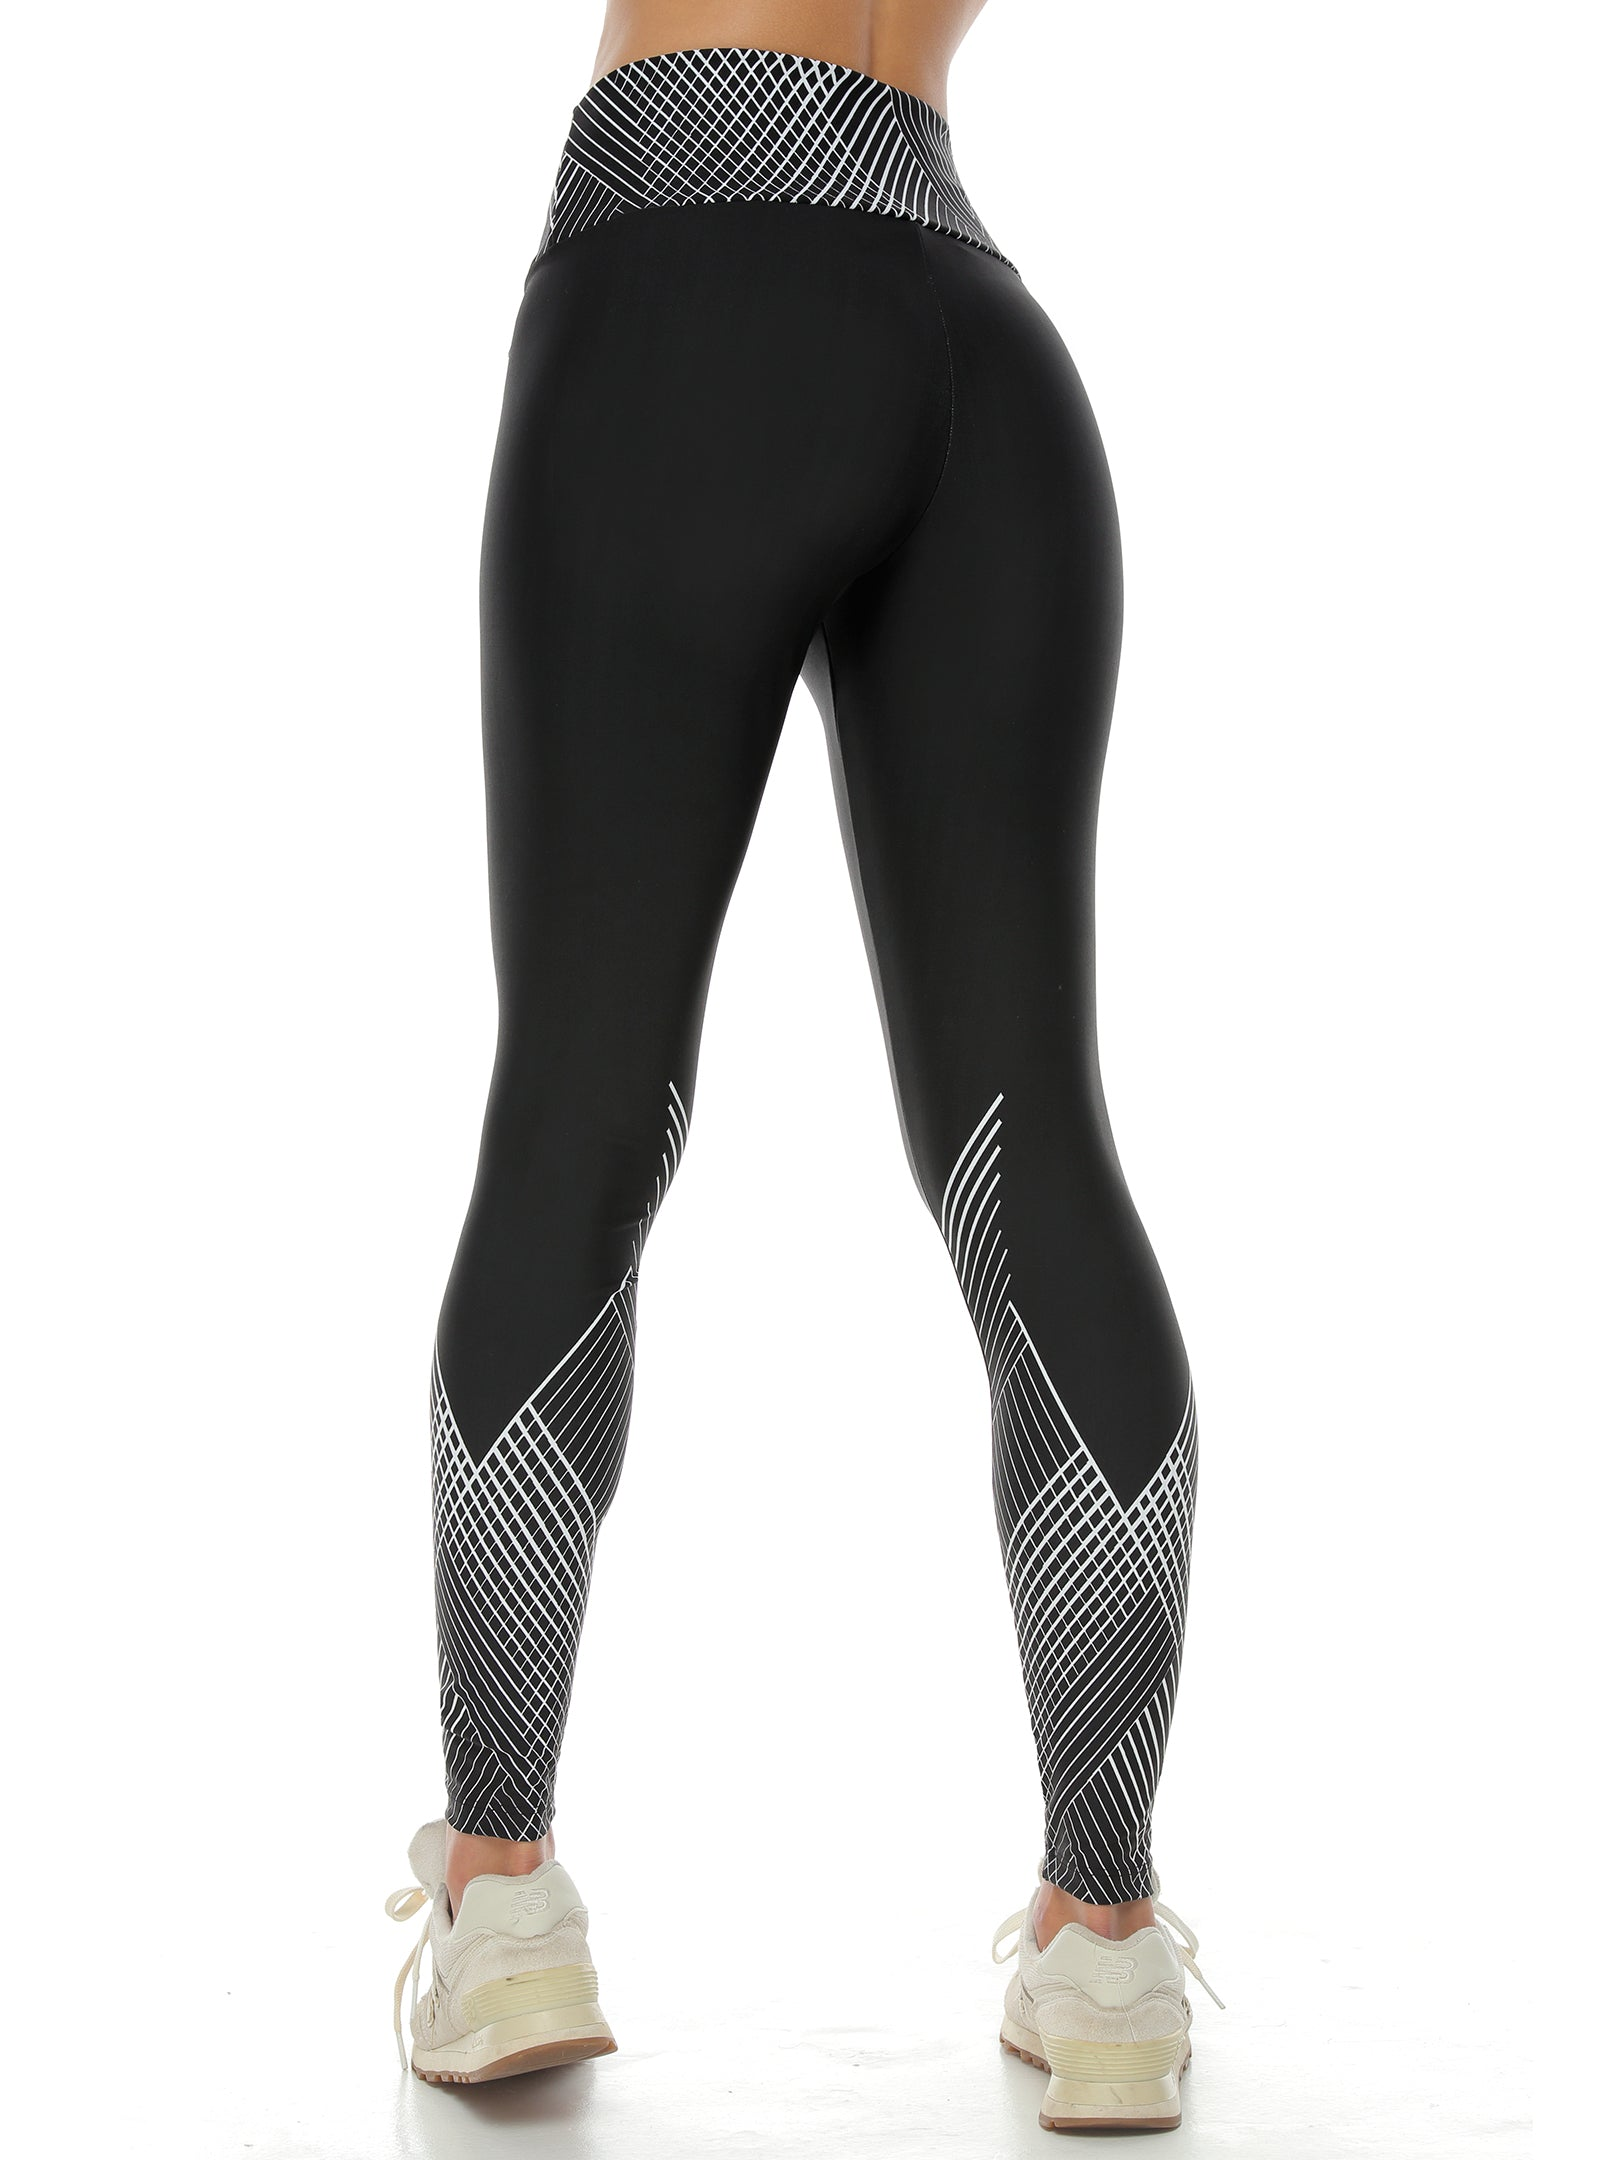 Leggings Ref: 4756